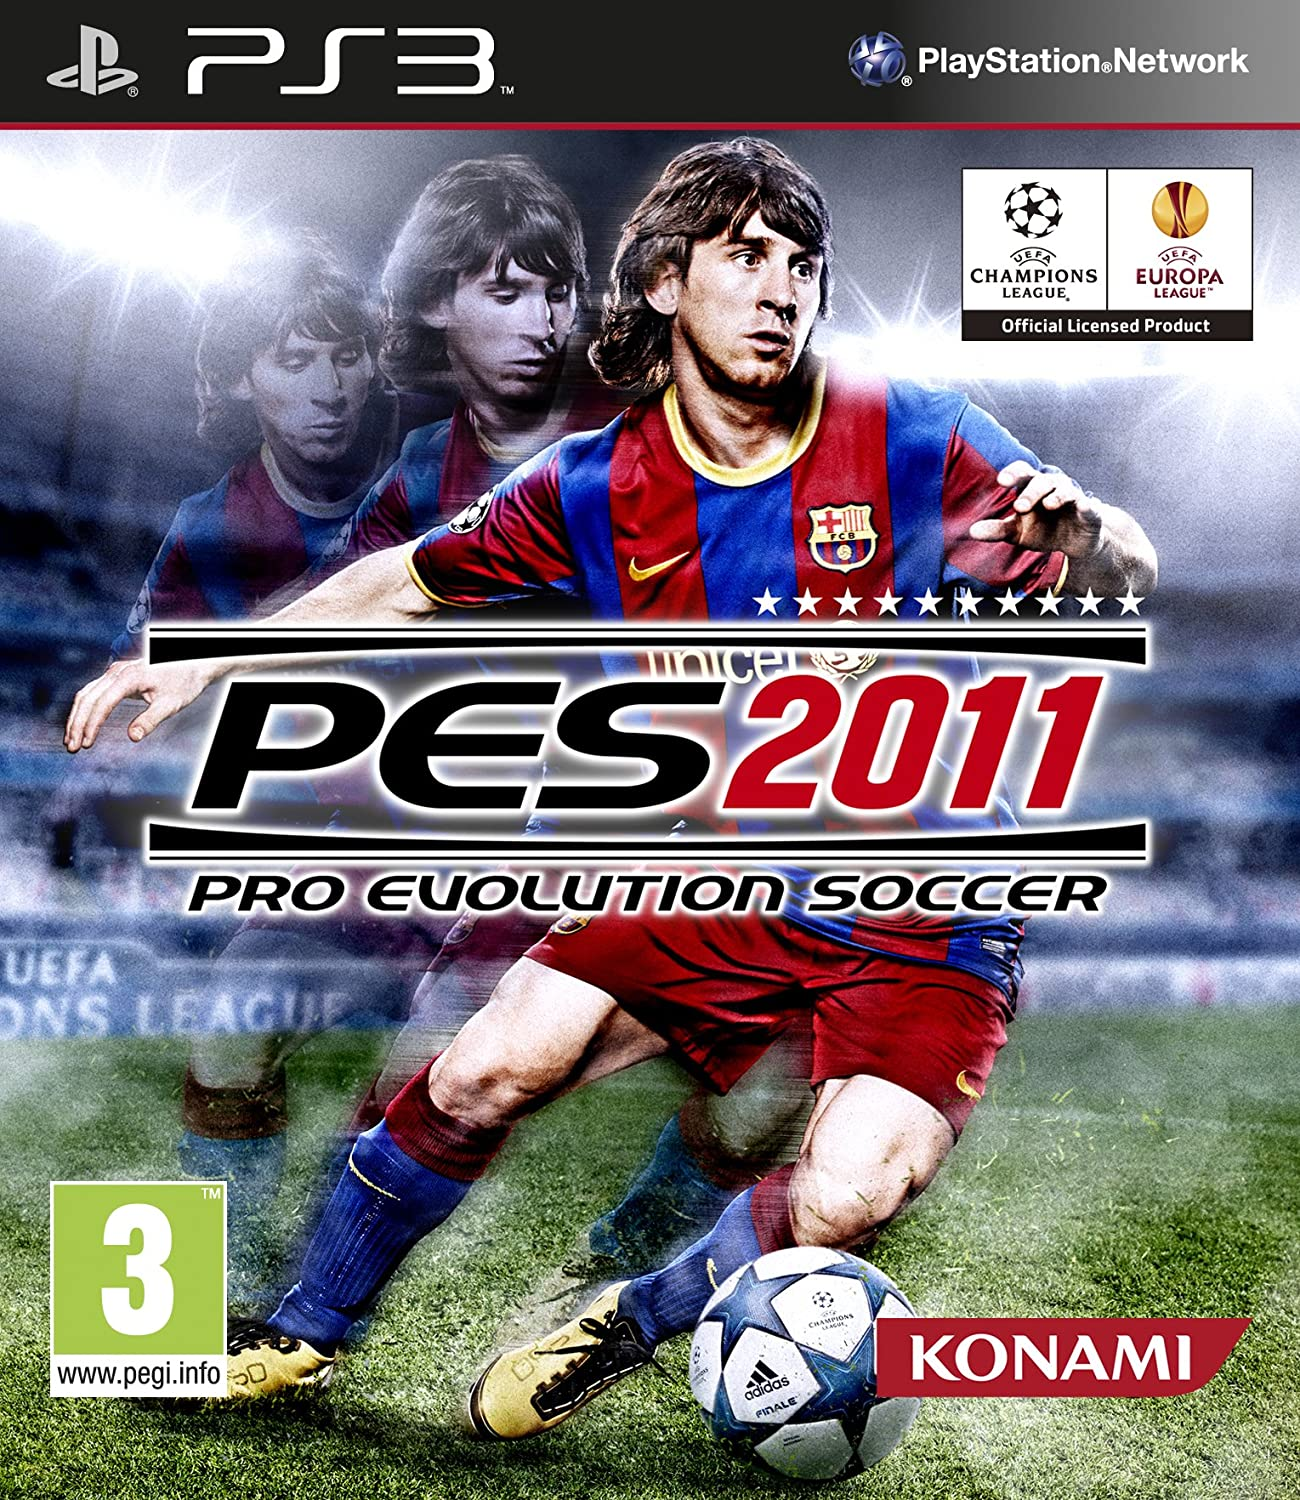 PES 2011 PS3 Gameplay